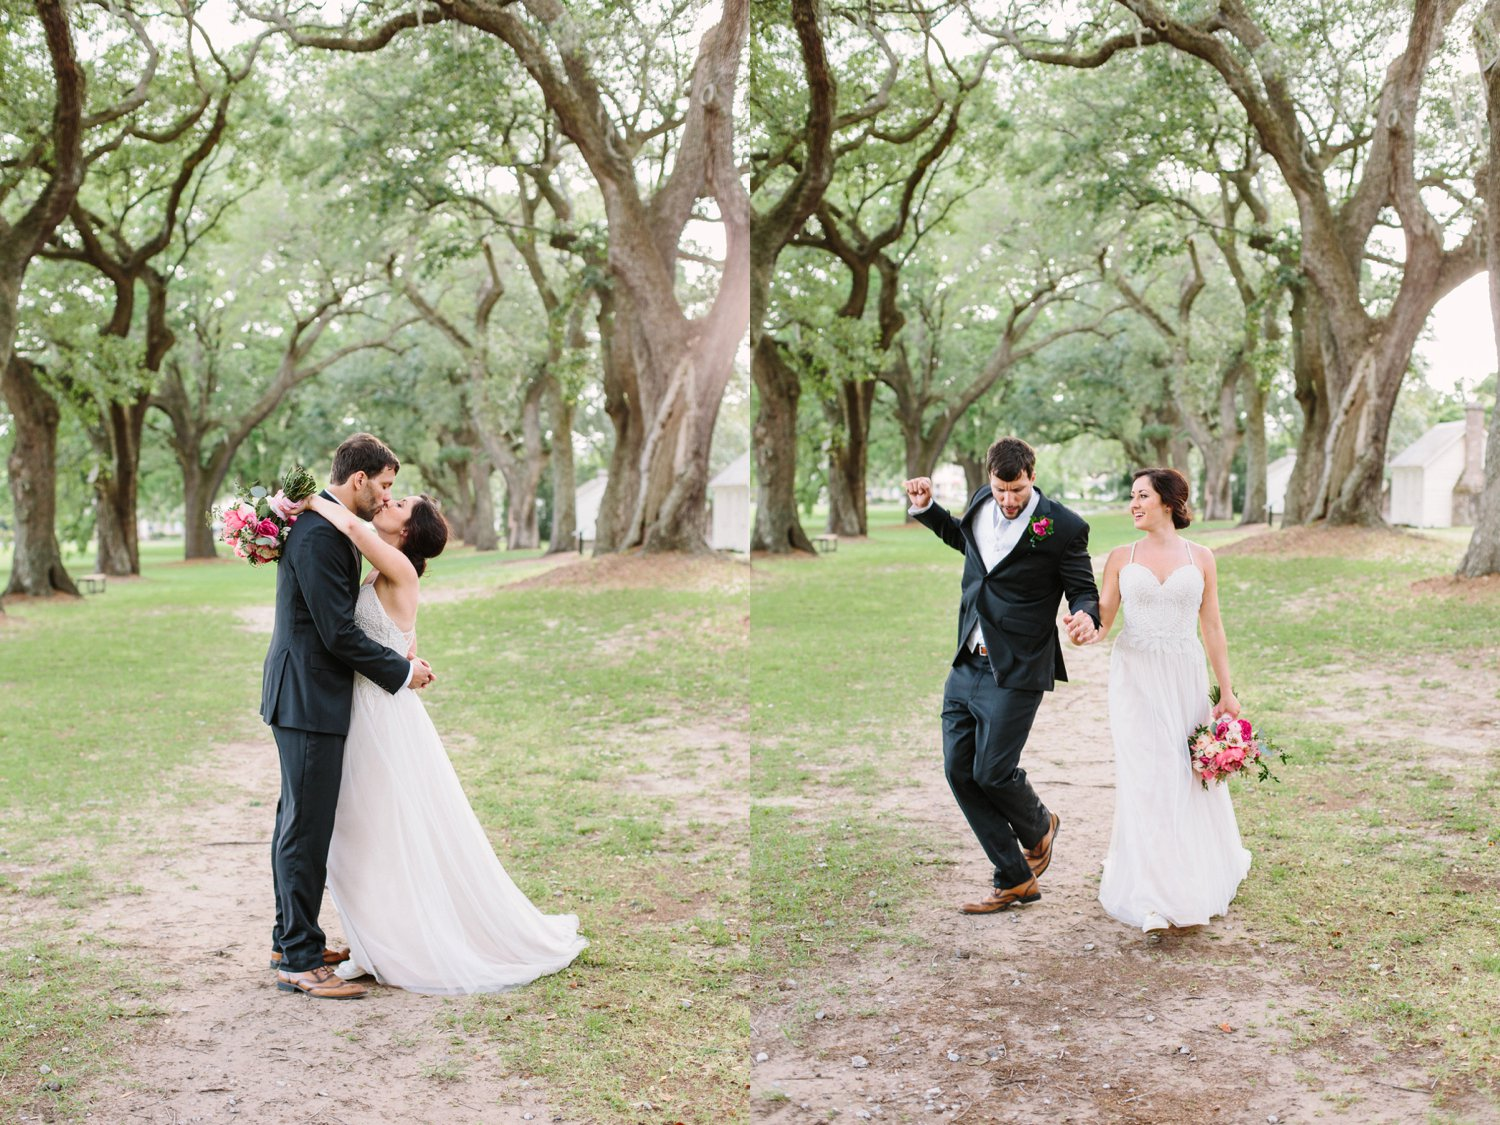 Lindsey_A_Miller_Photography_mcleod_plantation_wedding_charleston_south_carolina_clear_tent_spring_mod_events_078.jpg